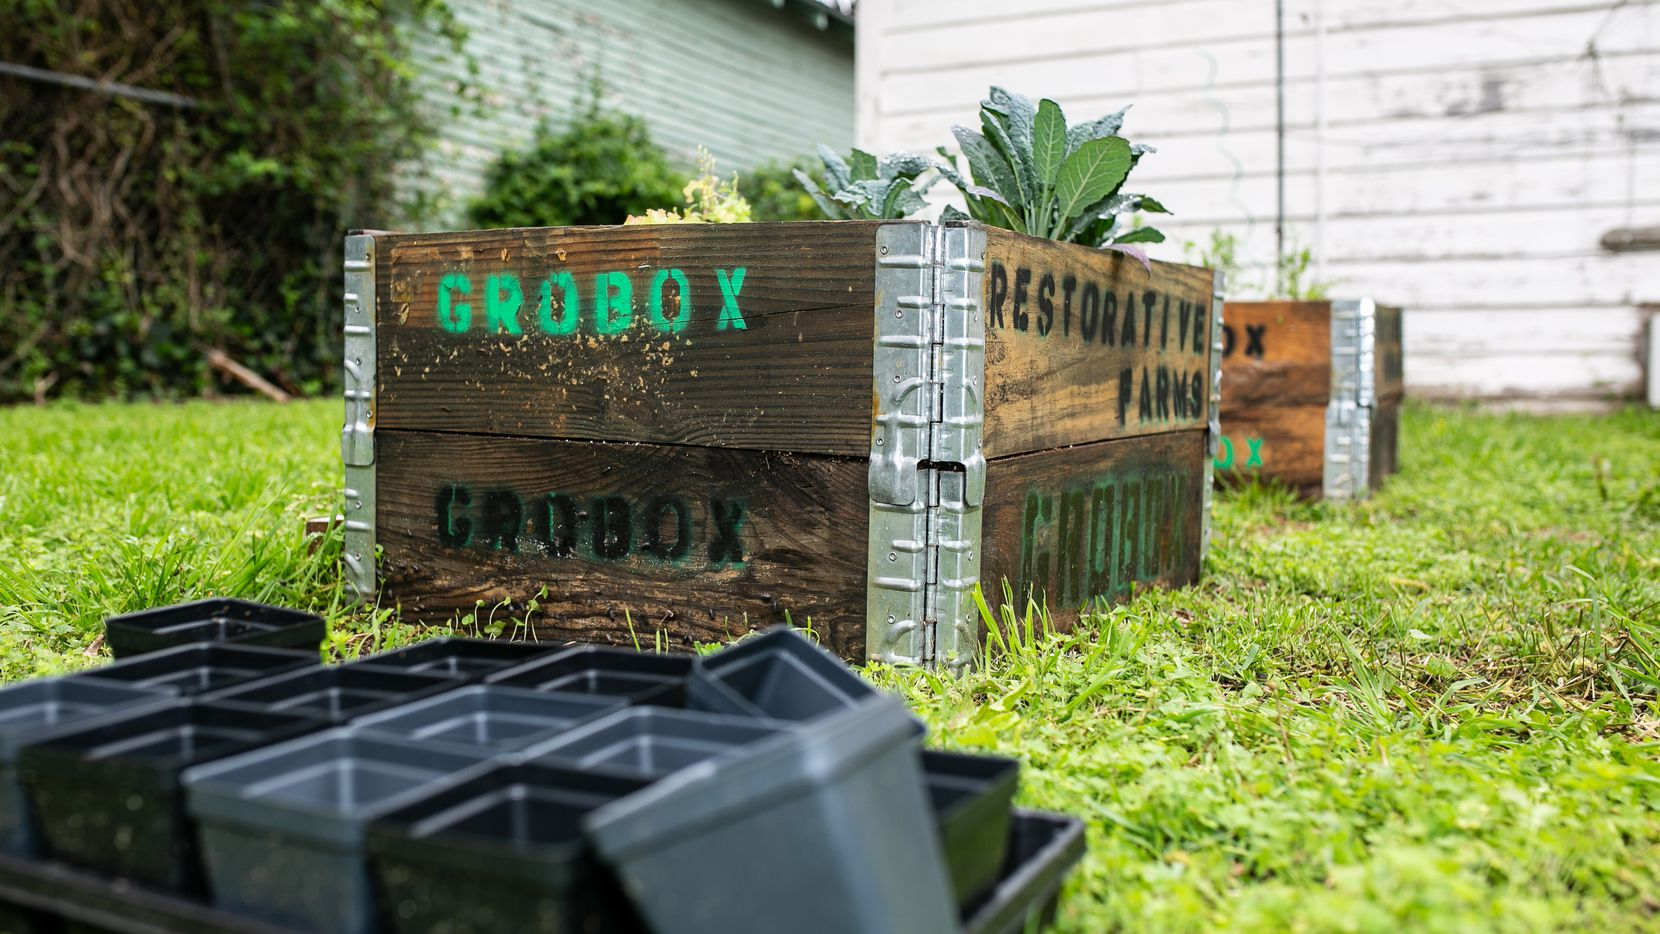 GroBox gardens from Restorative Farms comes with Dallas-grown seedlings.